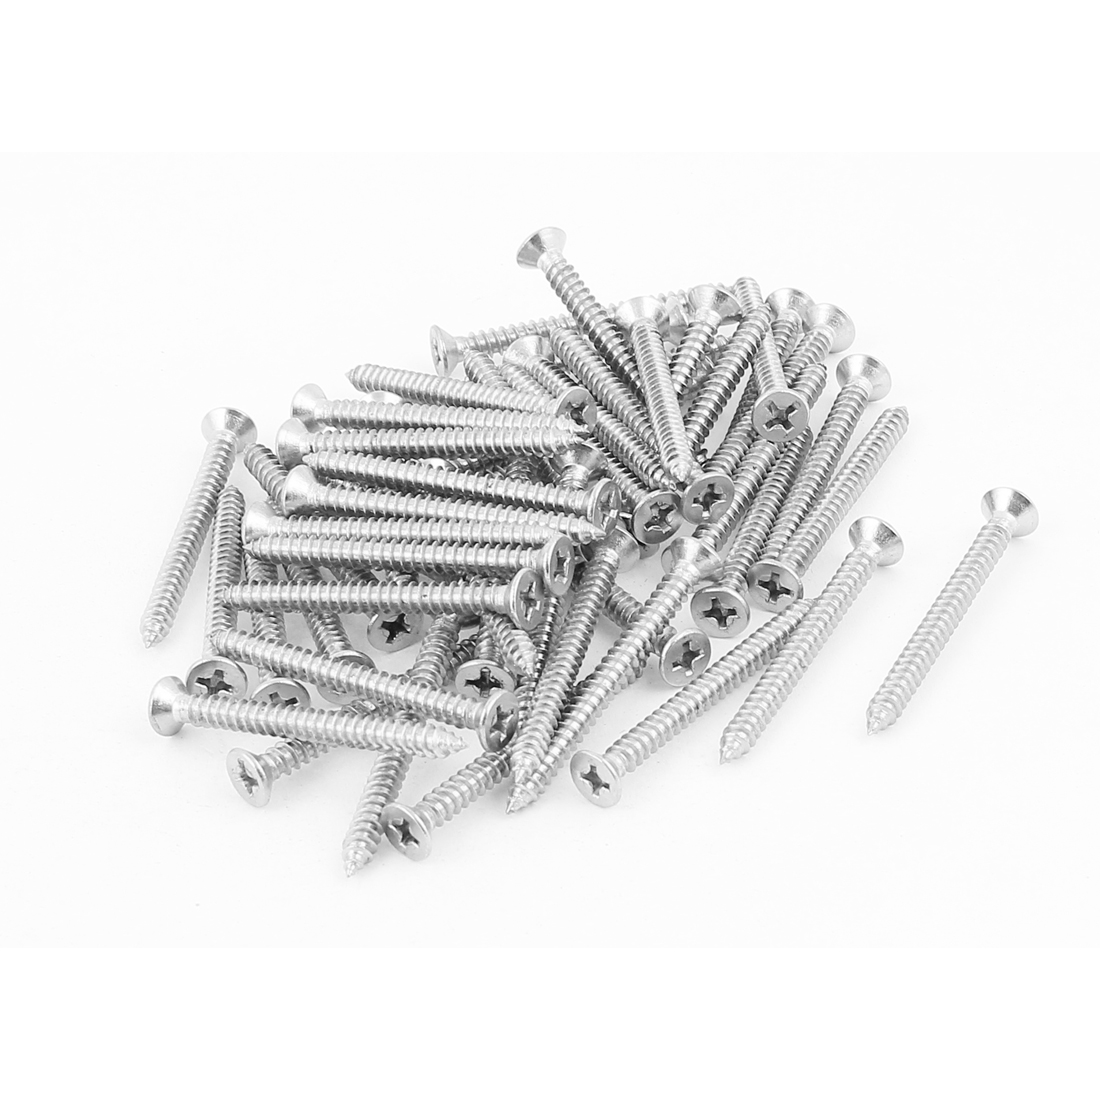 4.2mm x 45mm Countersunk Cross Head Self Tapping Screw Fasteners Silver Tone 50 Pcs